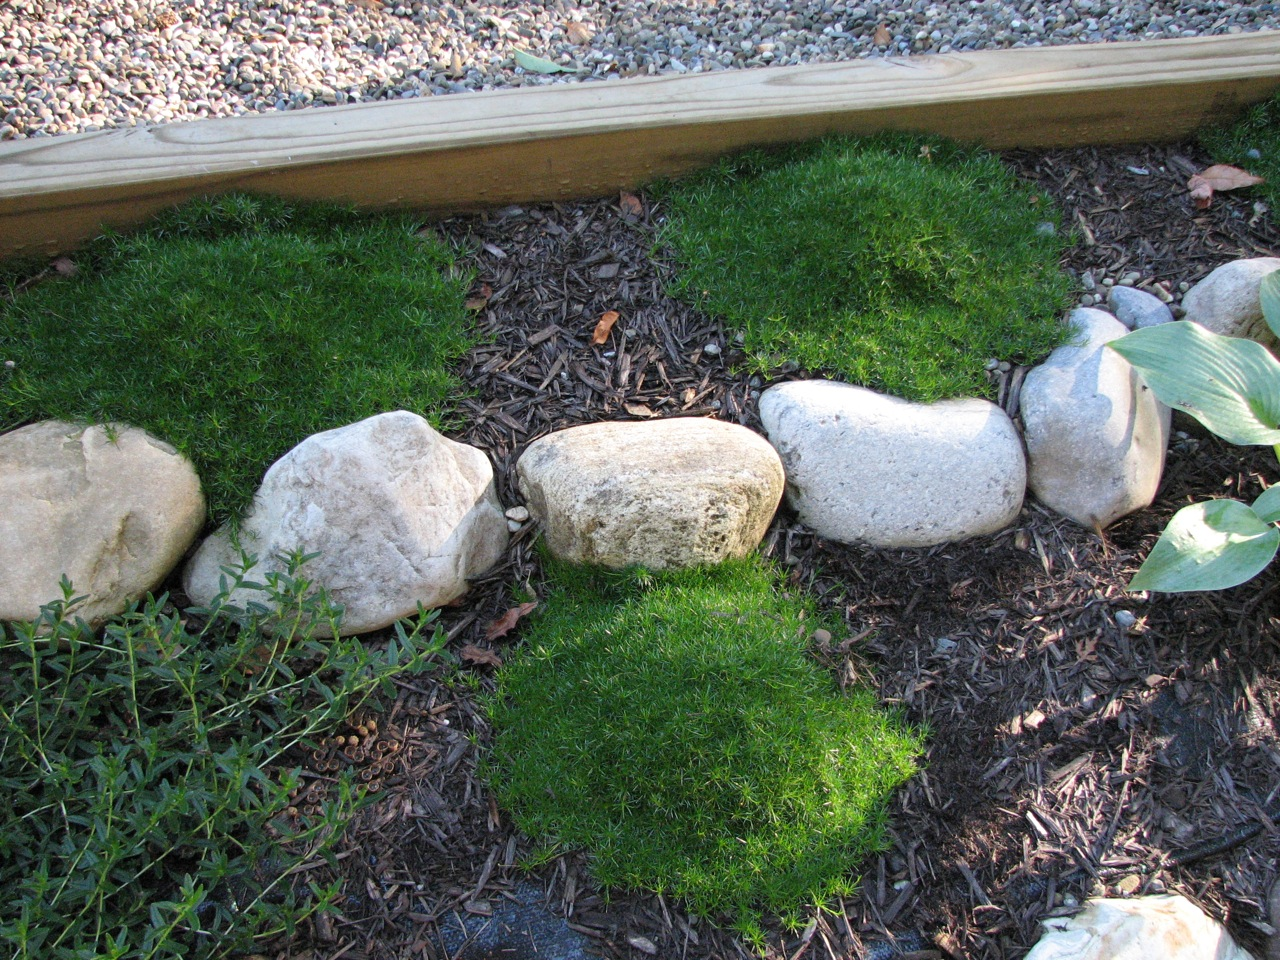 How to grow irish moss ground cover - This Zone 5 Plant Is Similar To The Irish Moss Above But Tends To Form Clumps It Prefers Shade With Some Morning Sunlight And Blooms In The Spring With